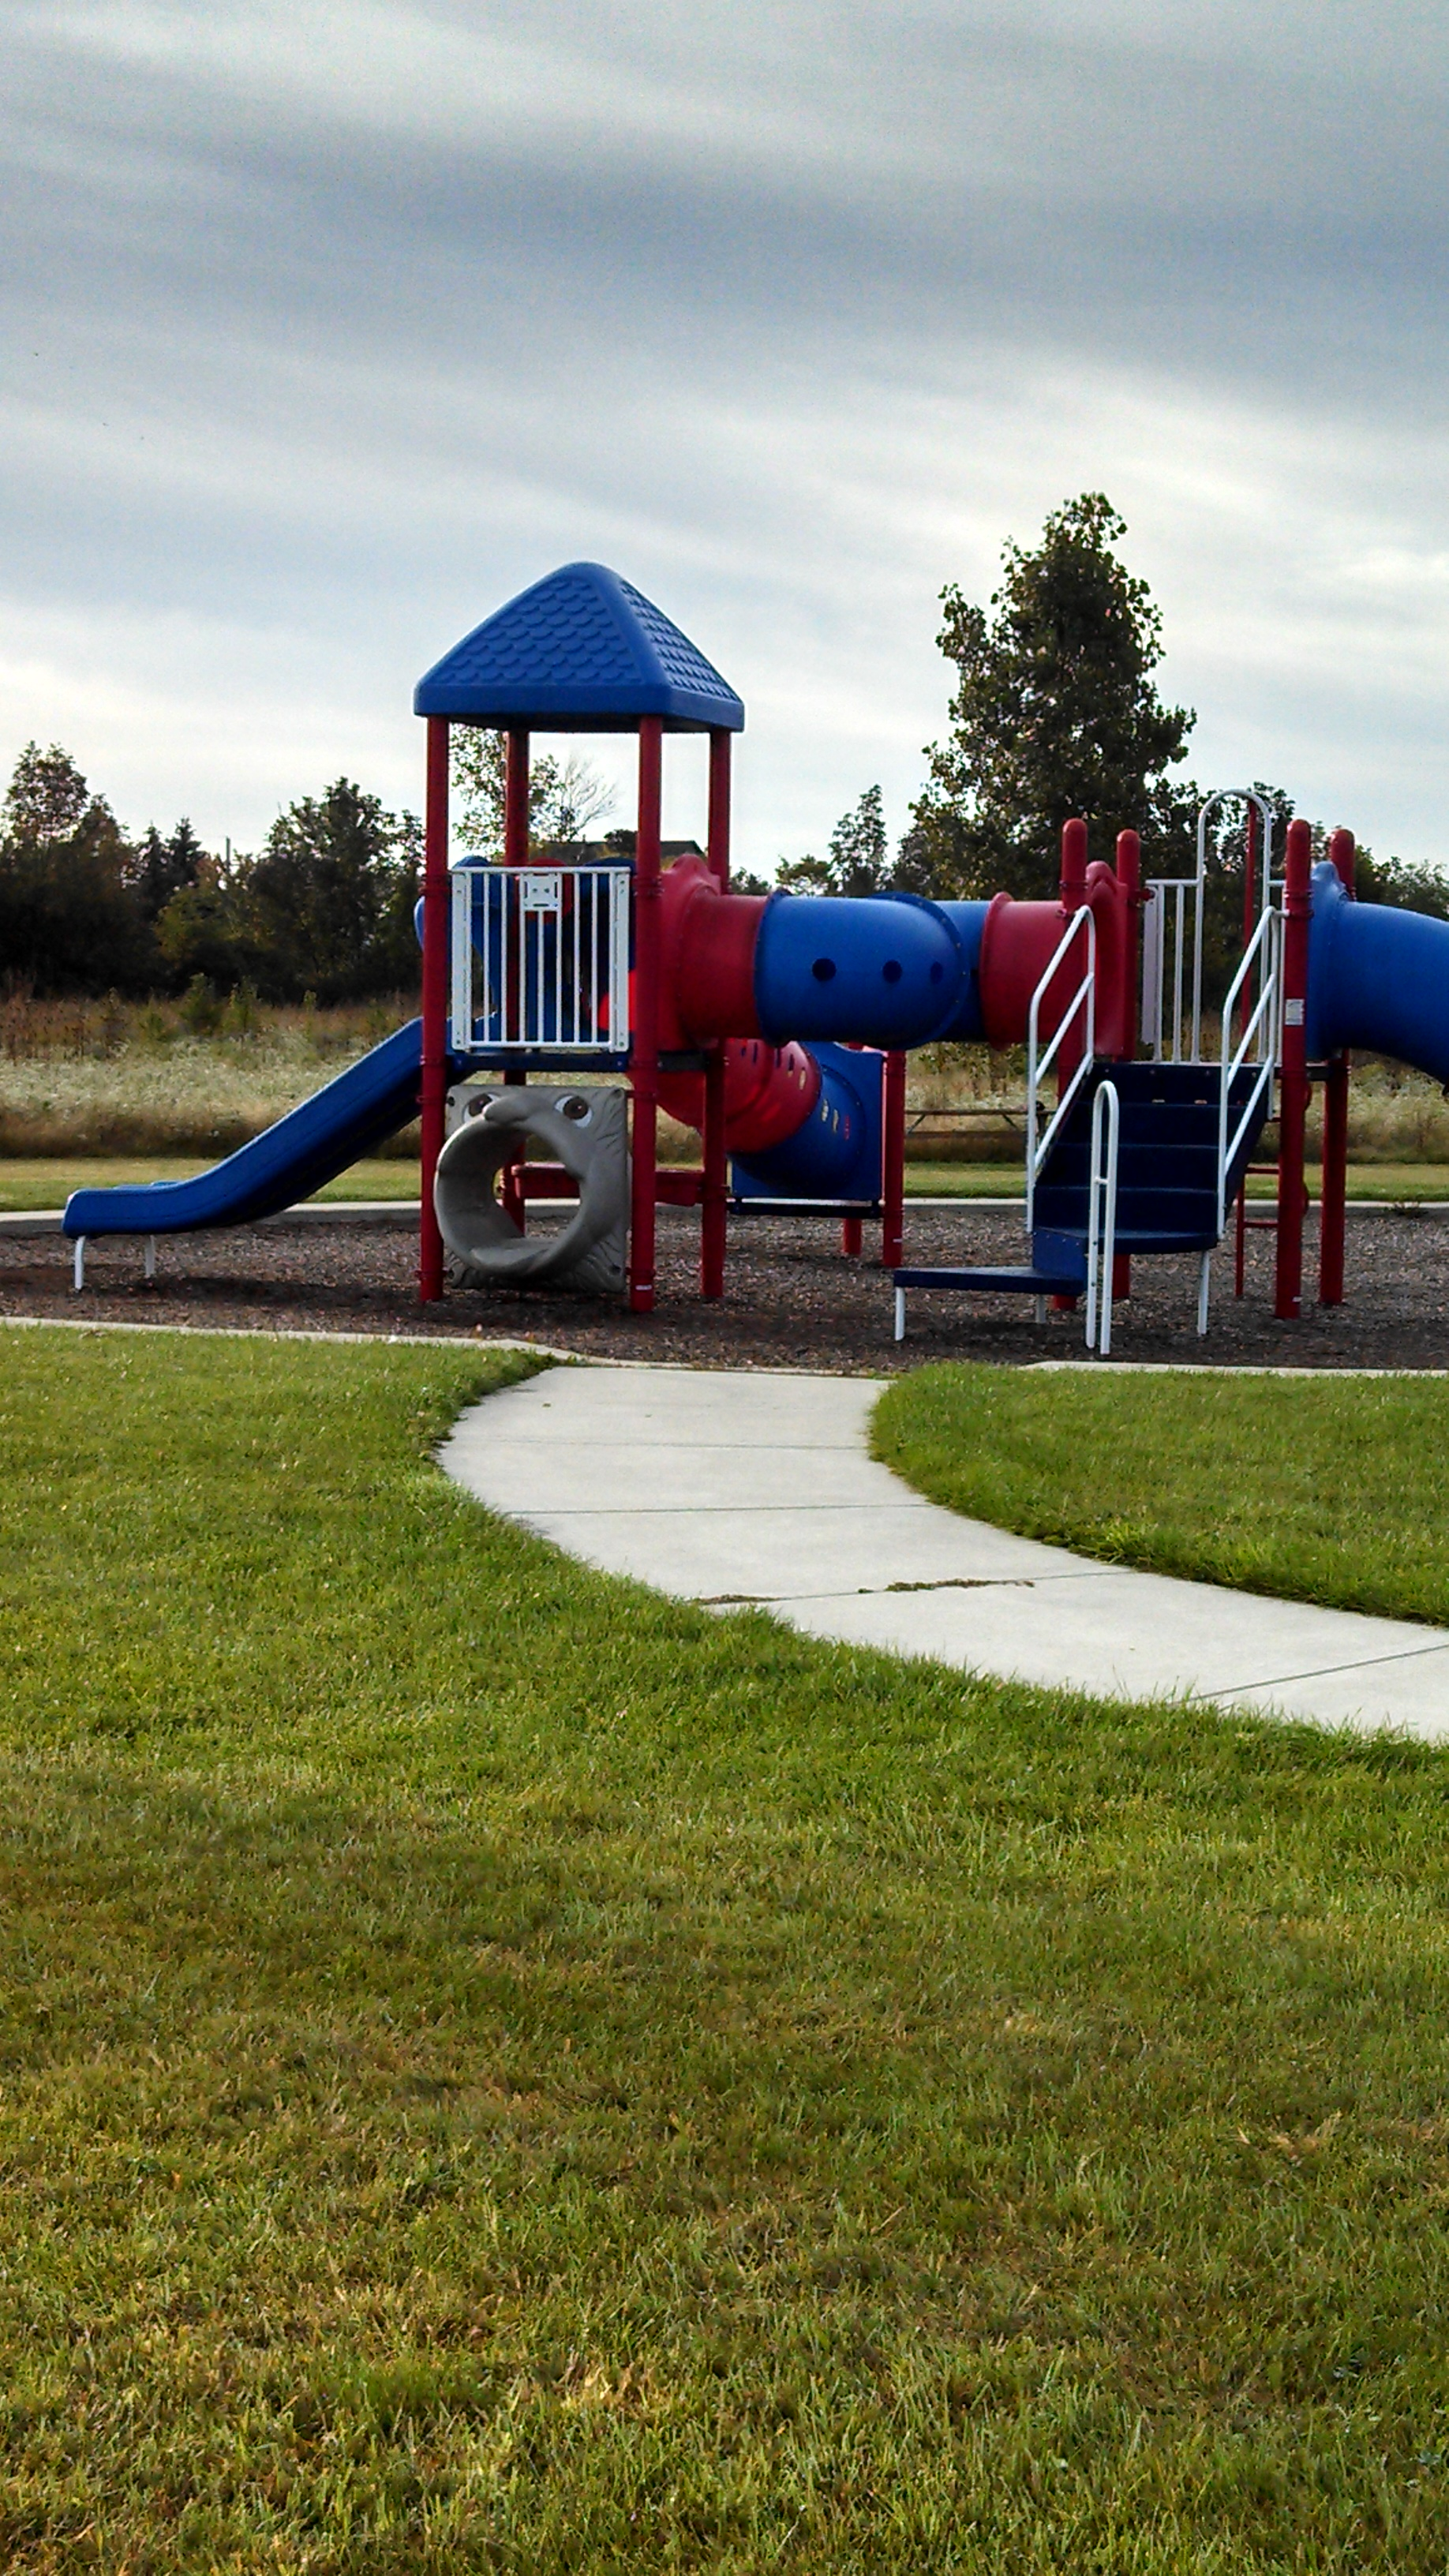 Prairie Park smaller play structure